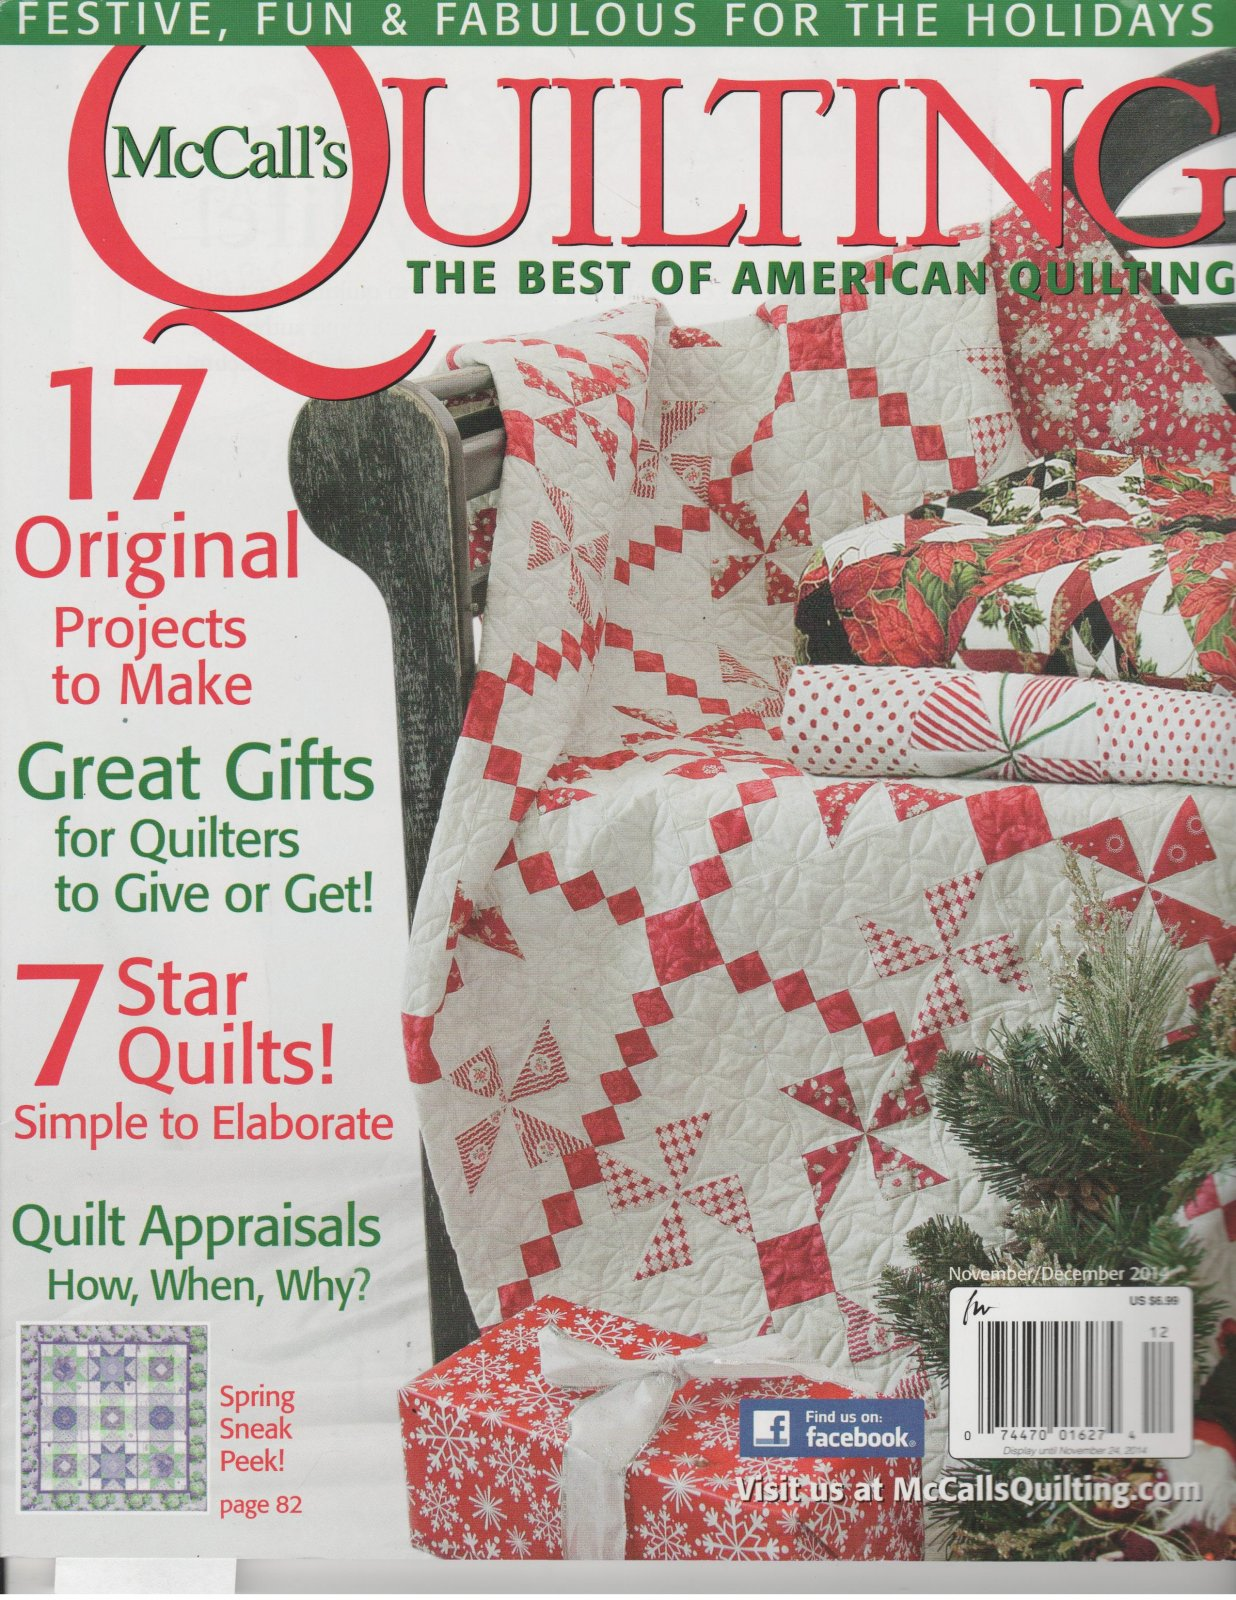 Magazine McCall's Quilting The Best of American Quilting Nov/Dec 2014